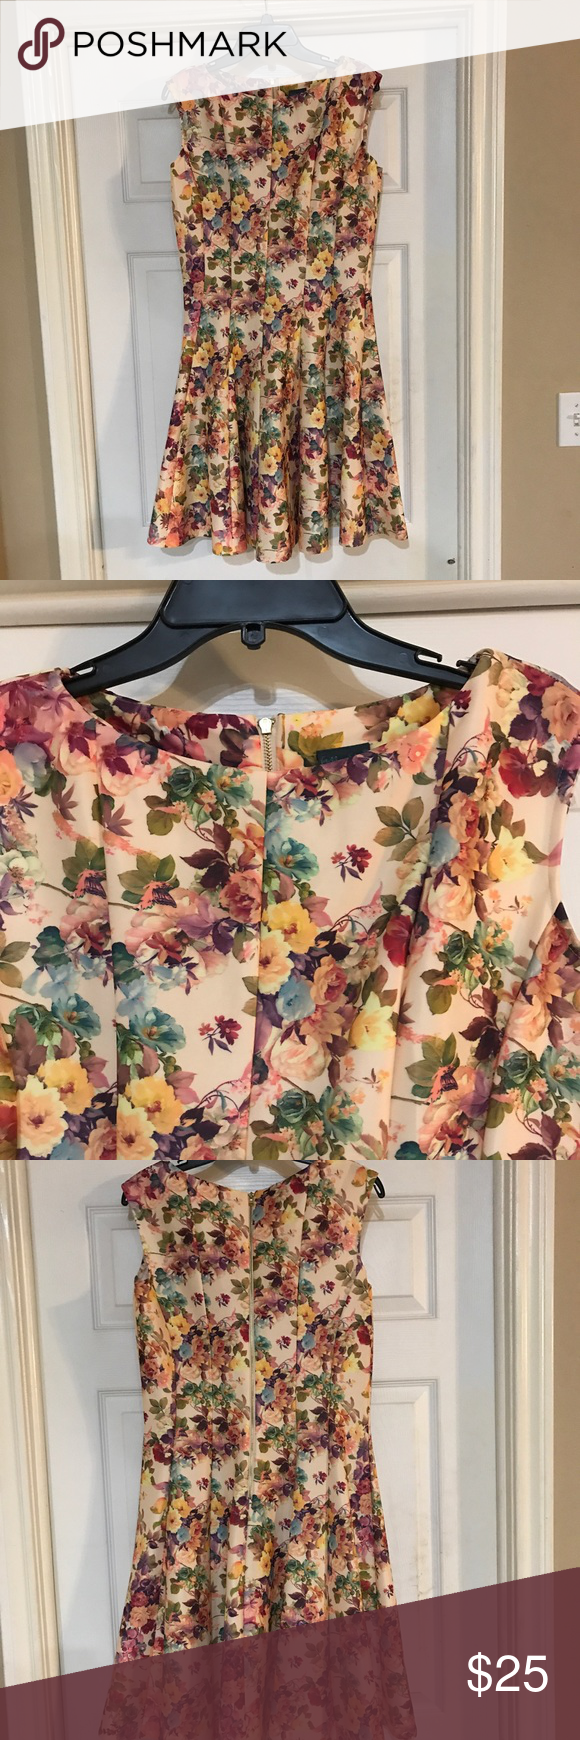 Vintage Floral Print Pleated Dress Gabby Skye vintage floral style pleated scuba dress with high neckline and zipper closure in the back. Worn for a wedding shower. Great condition. Size 14 but fits more like a 12. Dresses